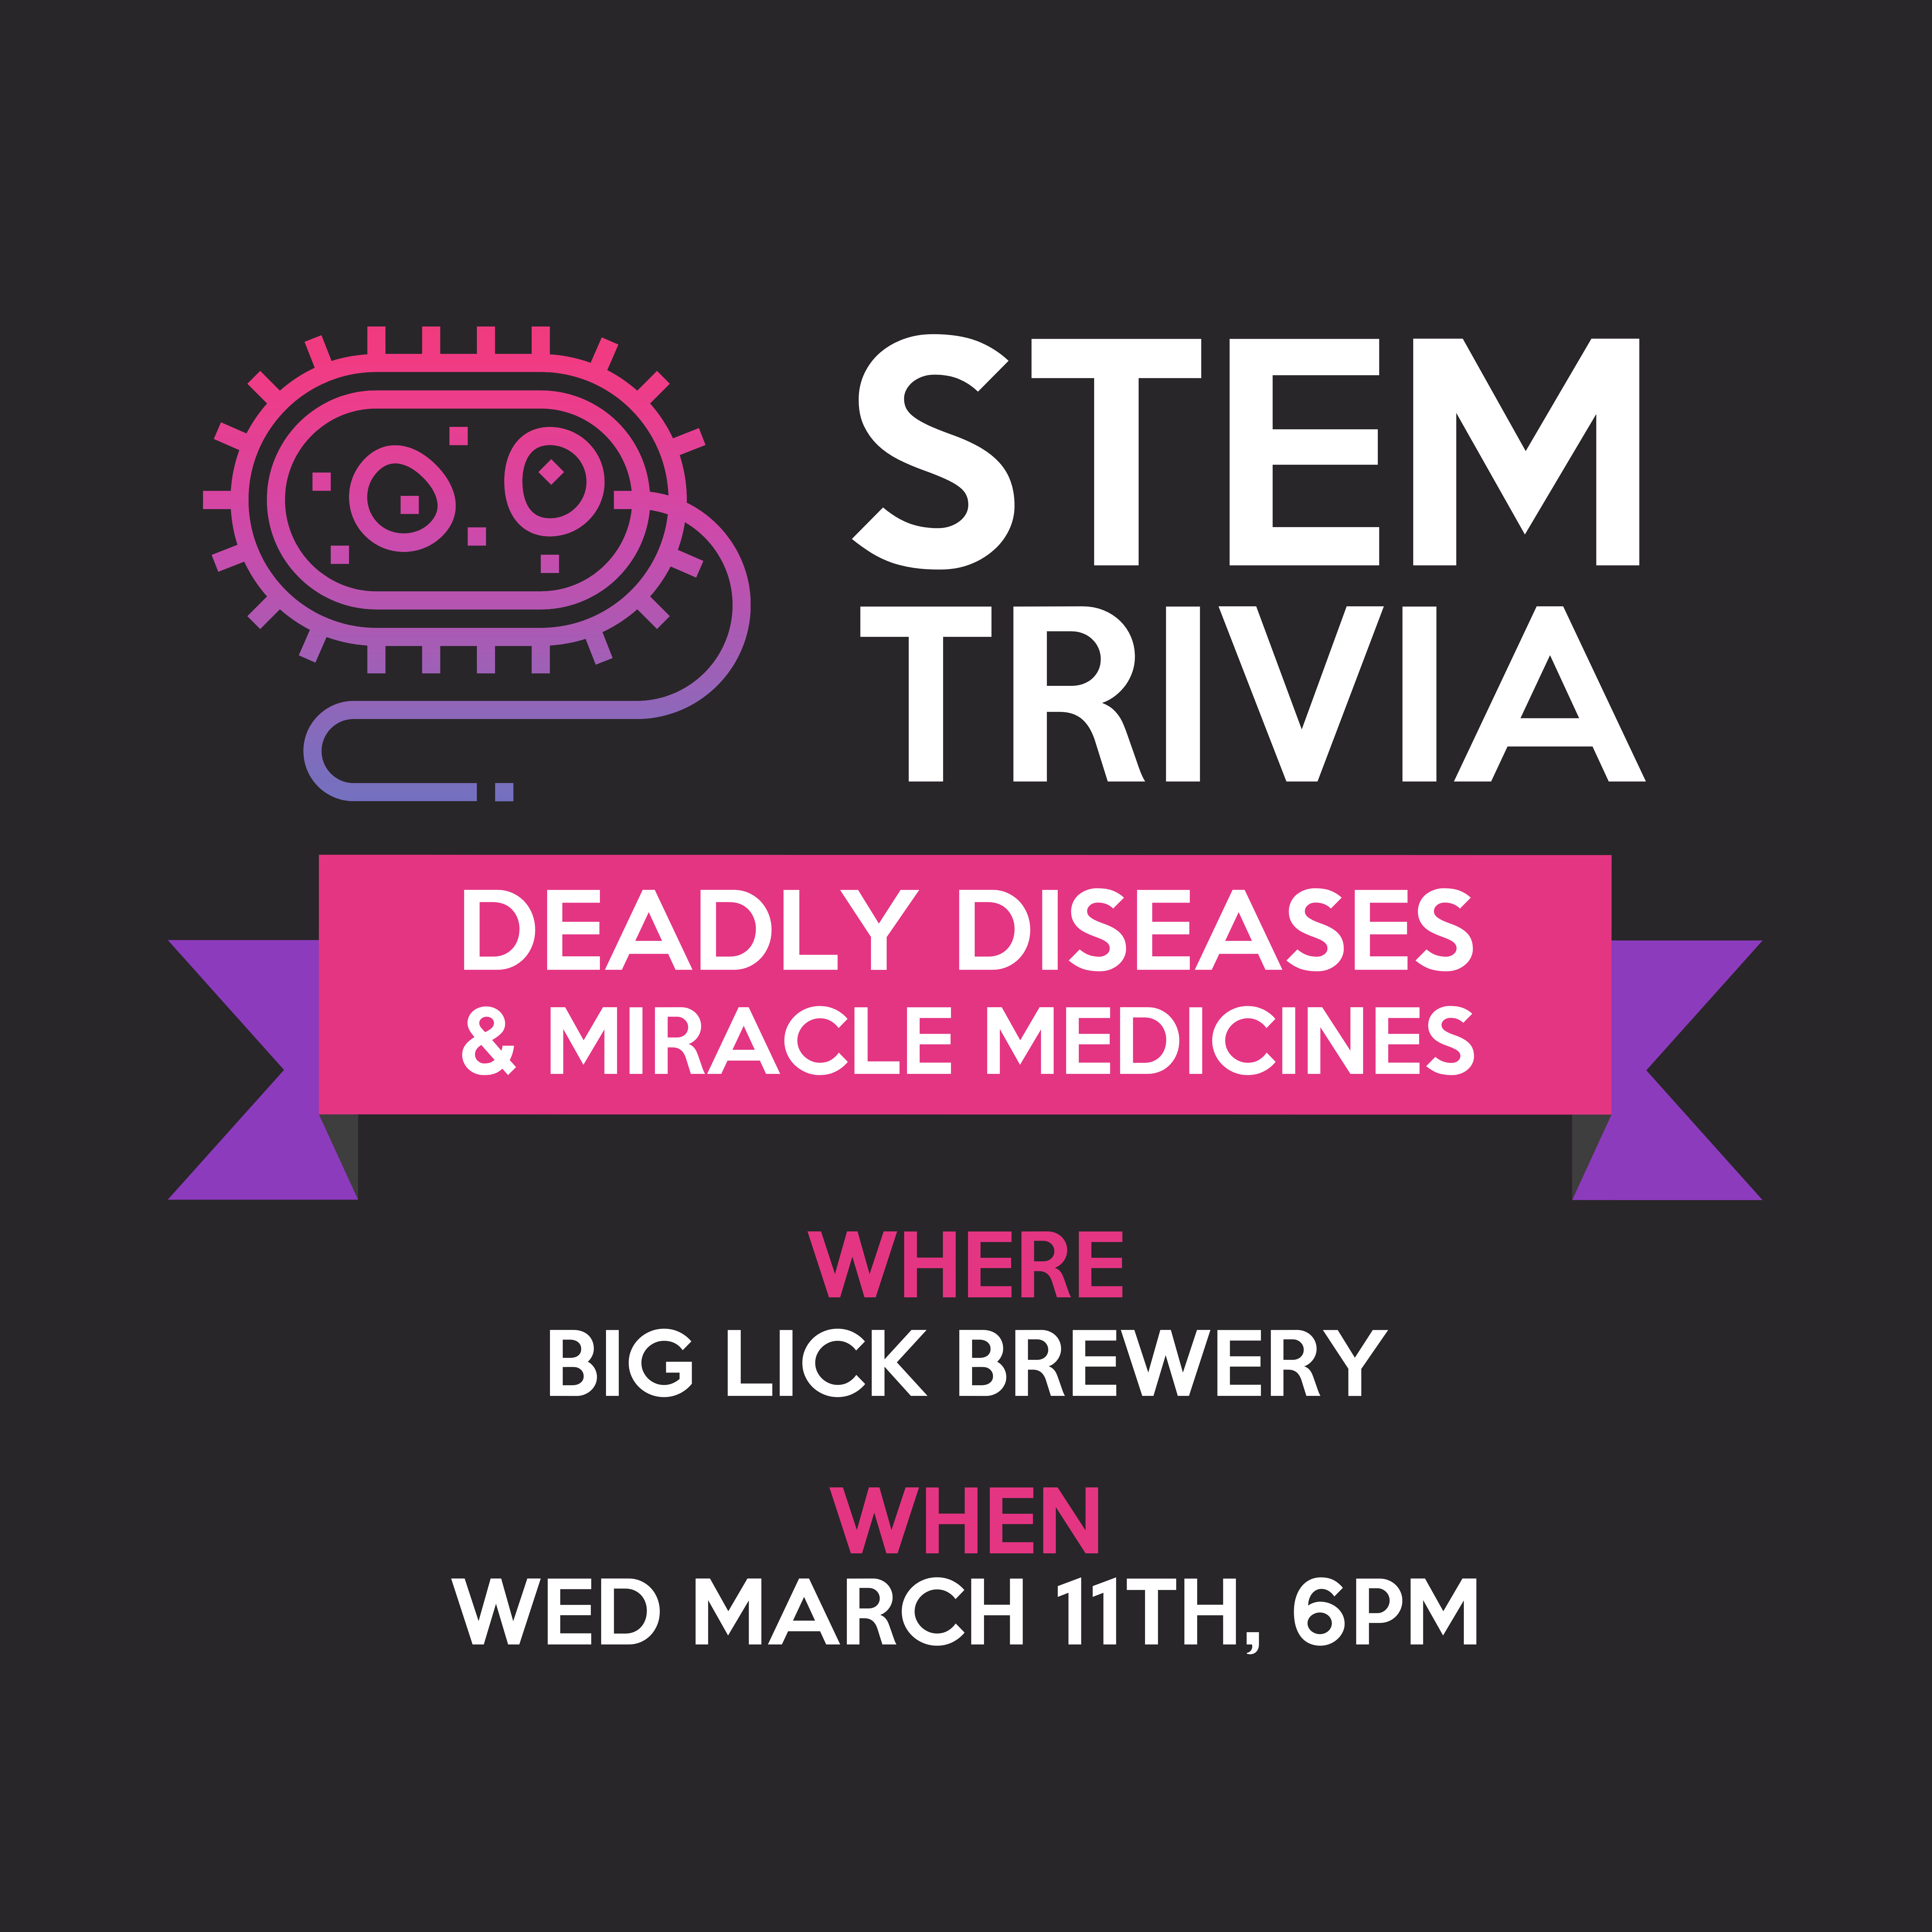 STEM Trivia Deadly Diseases flyer